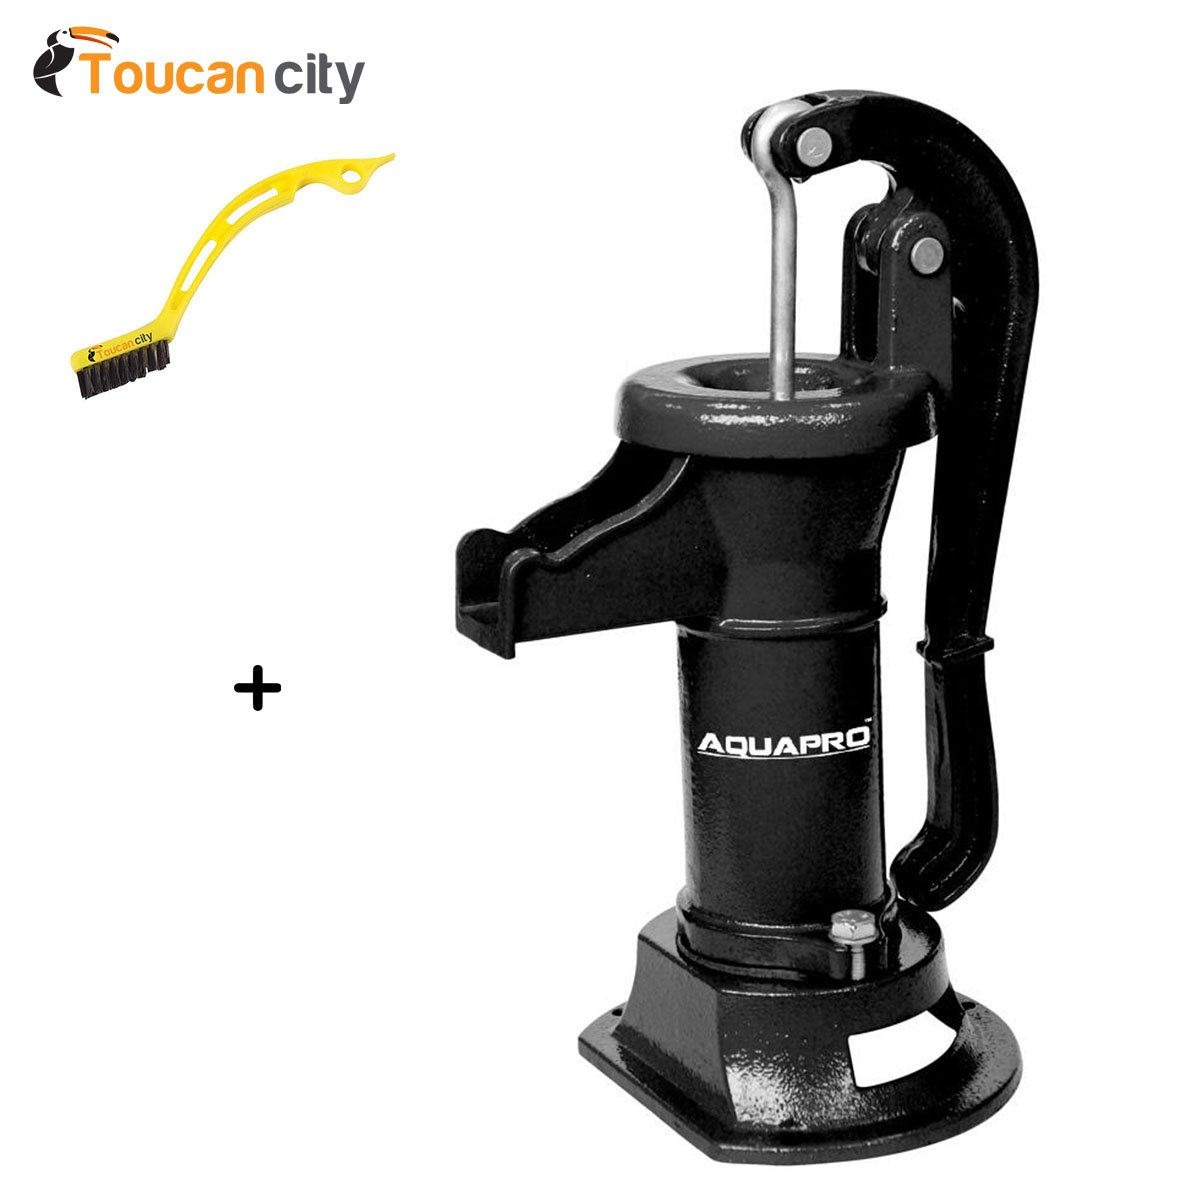 Toucan City Tile and Grout Brush and AquaPro Pitcher Pump 150113